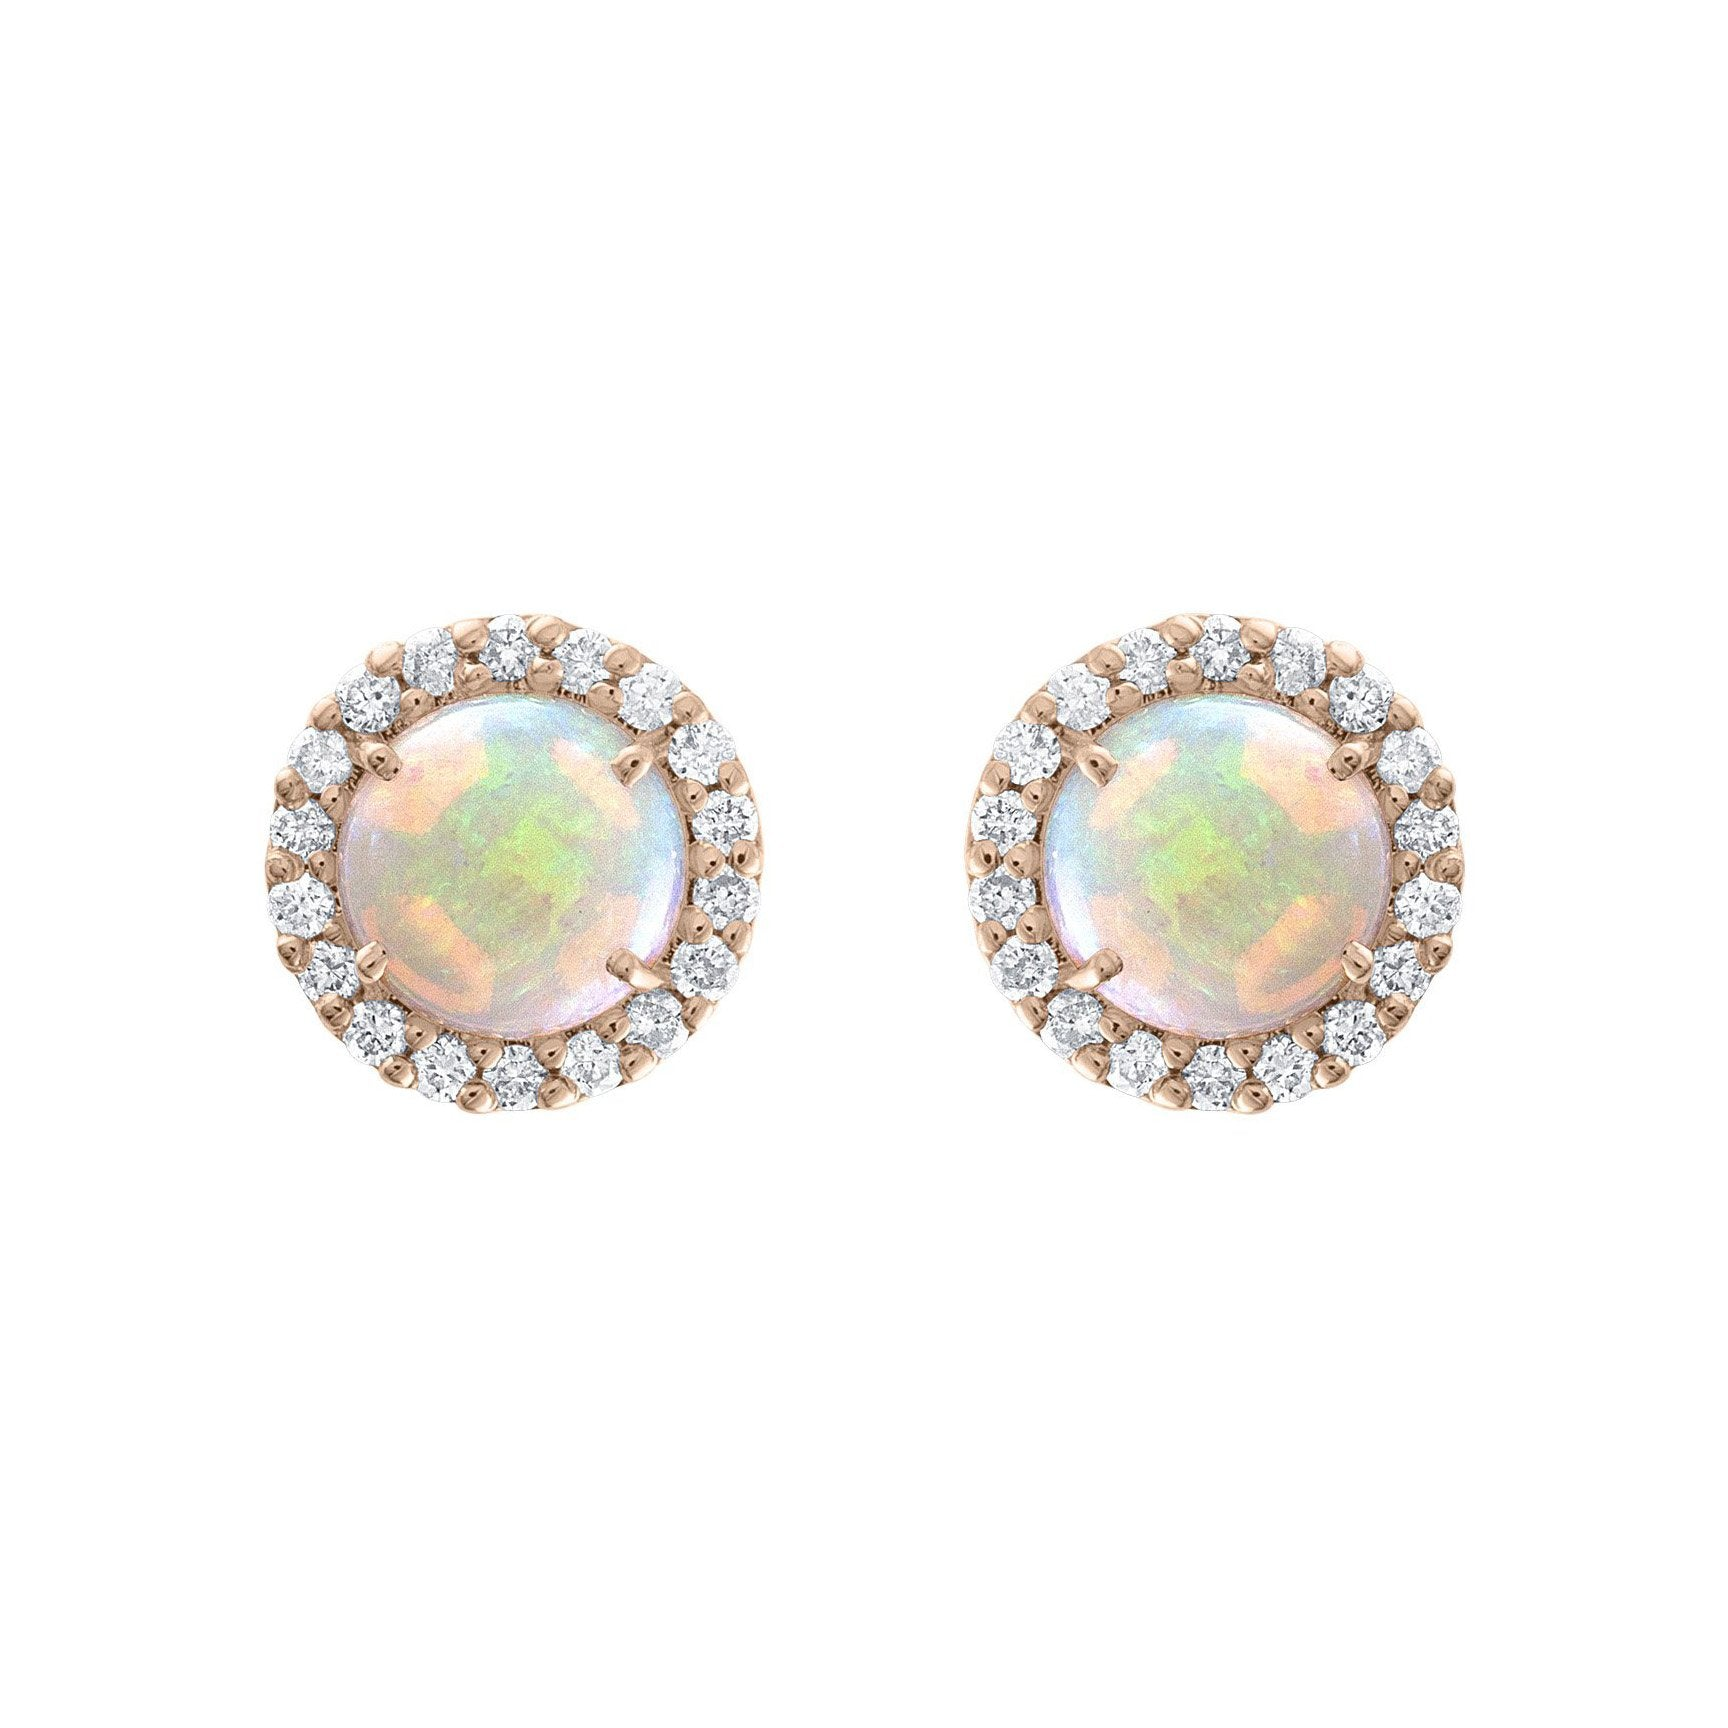 93d43c836 Sabel Collection 14K Rose Gold Round Opal Diamond Halo Stud Earrings